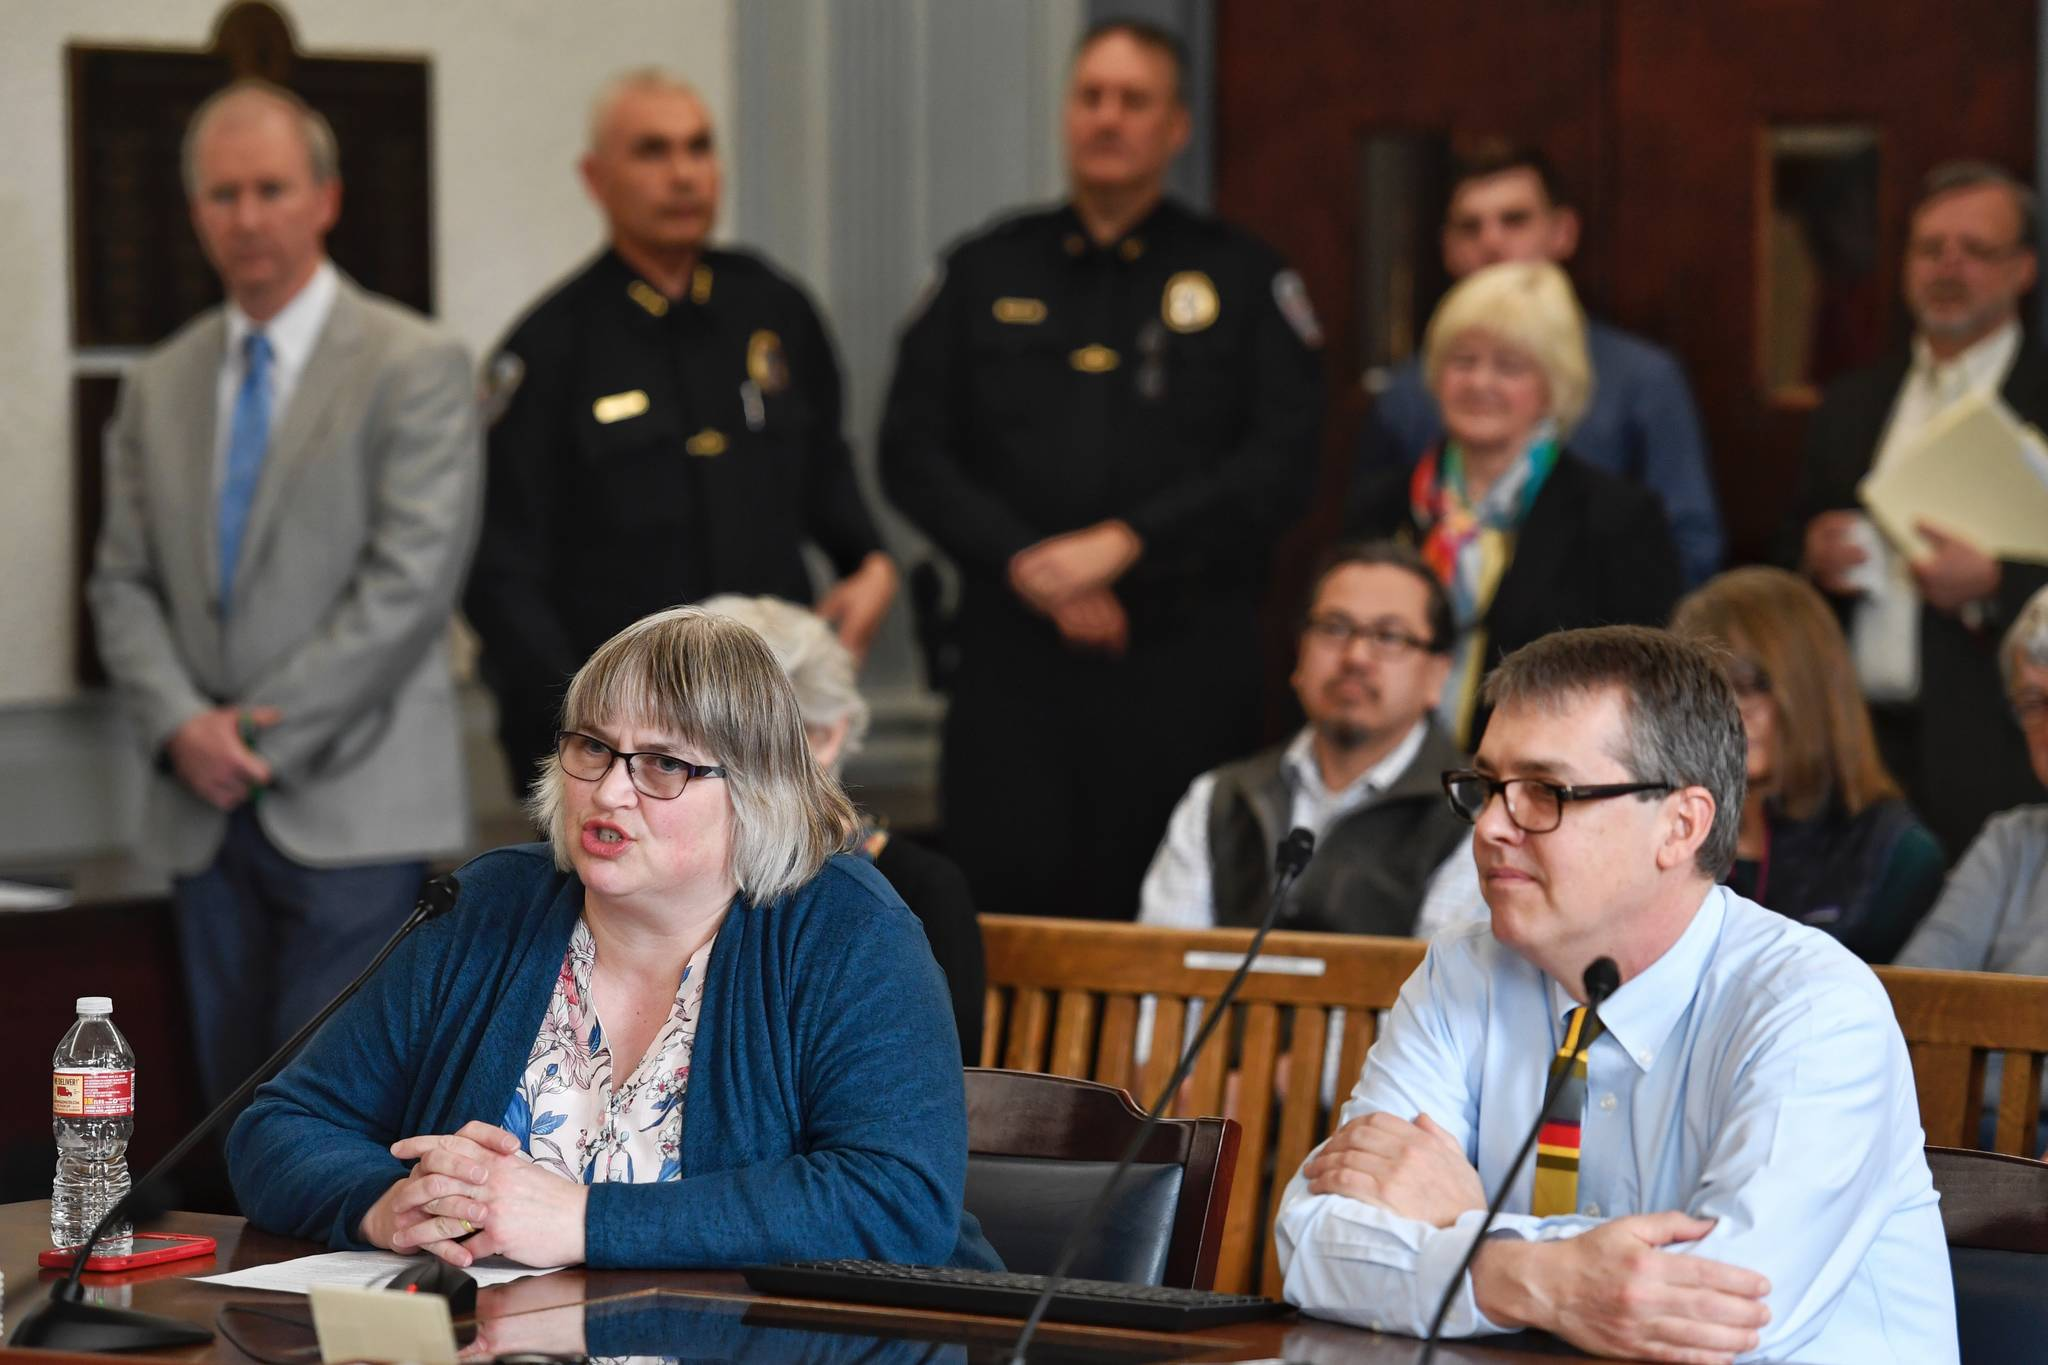 Mayor Beth Weldon, left, and City Manager Rorie Watt testify on the operating budget in front of the Senate Finance Committee at the Capitol on Thursday, April 11, 2019. (Michael Penn | Juneau Empire)